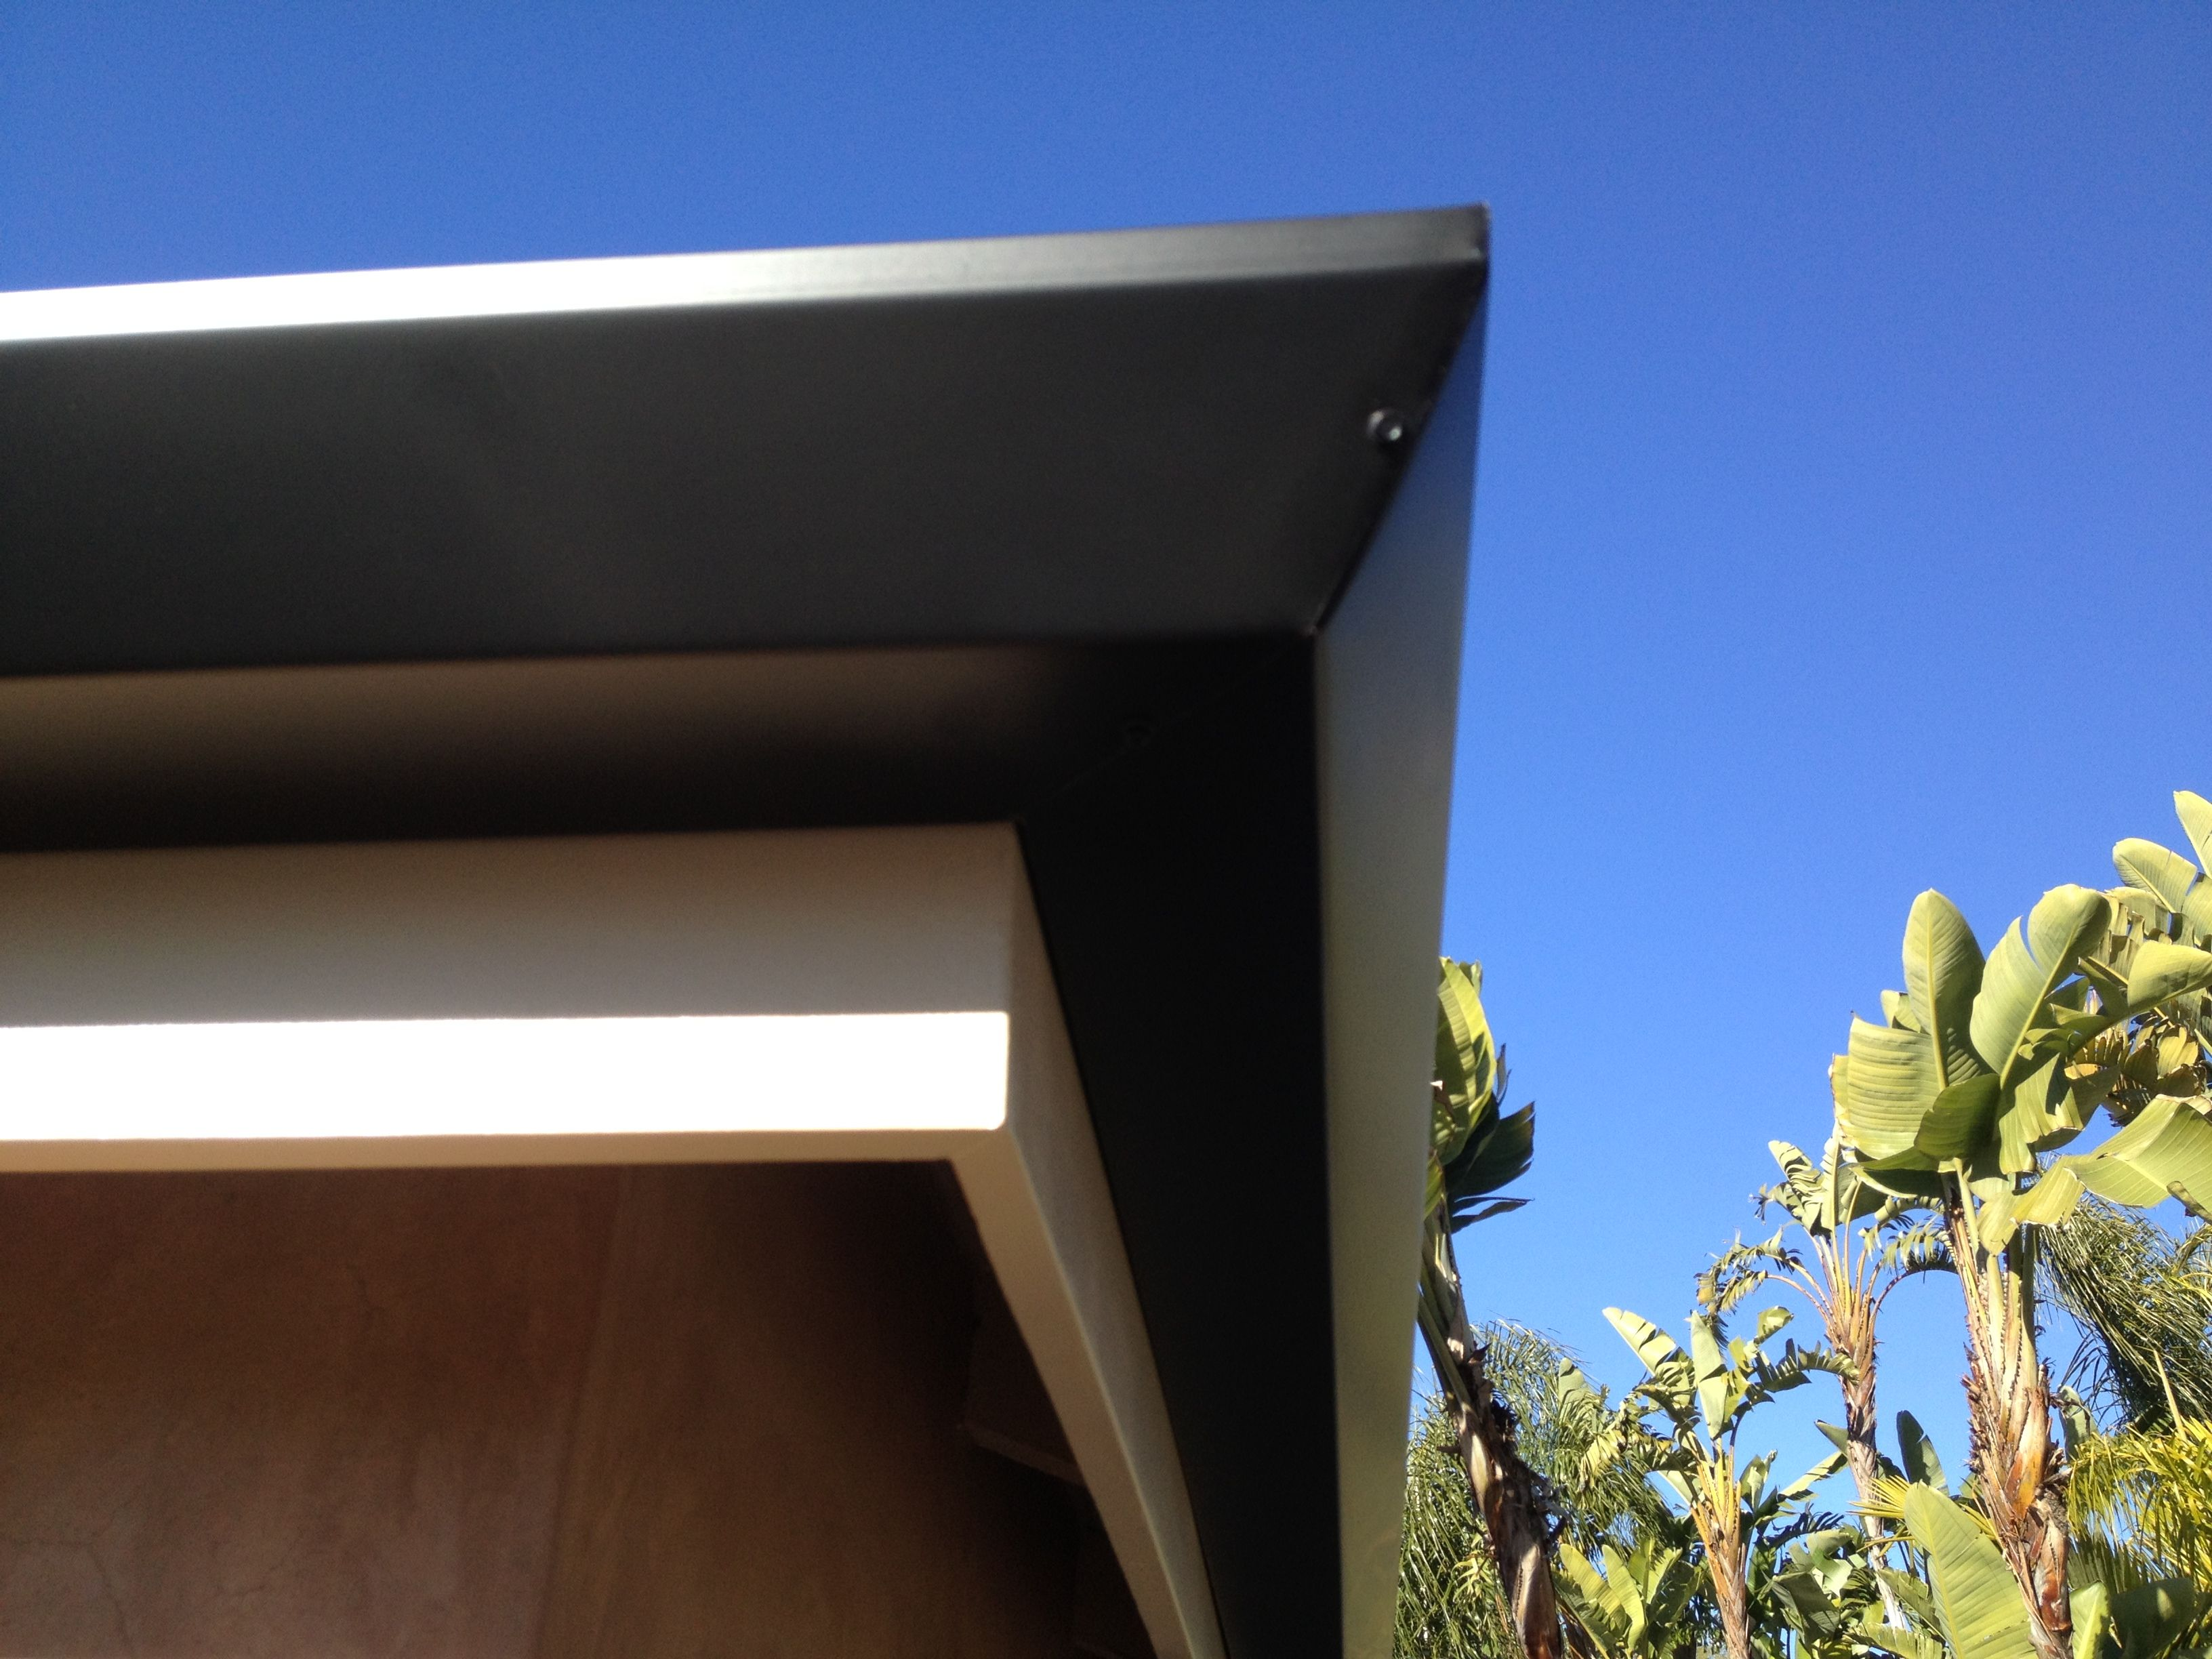 Black Angle Faced Rain Gutters On A White Fascia Board Nice Contrast This Home Was In Costa Mesa California Gutters How To Install Gutters Downspout